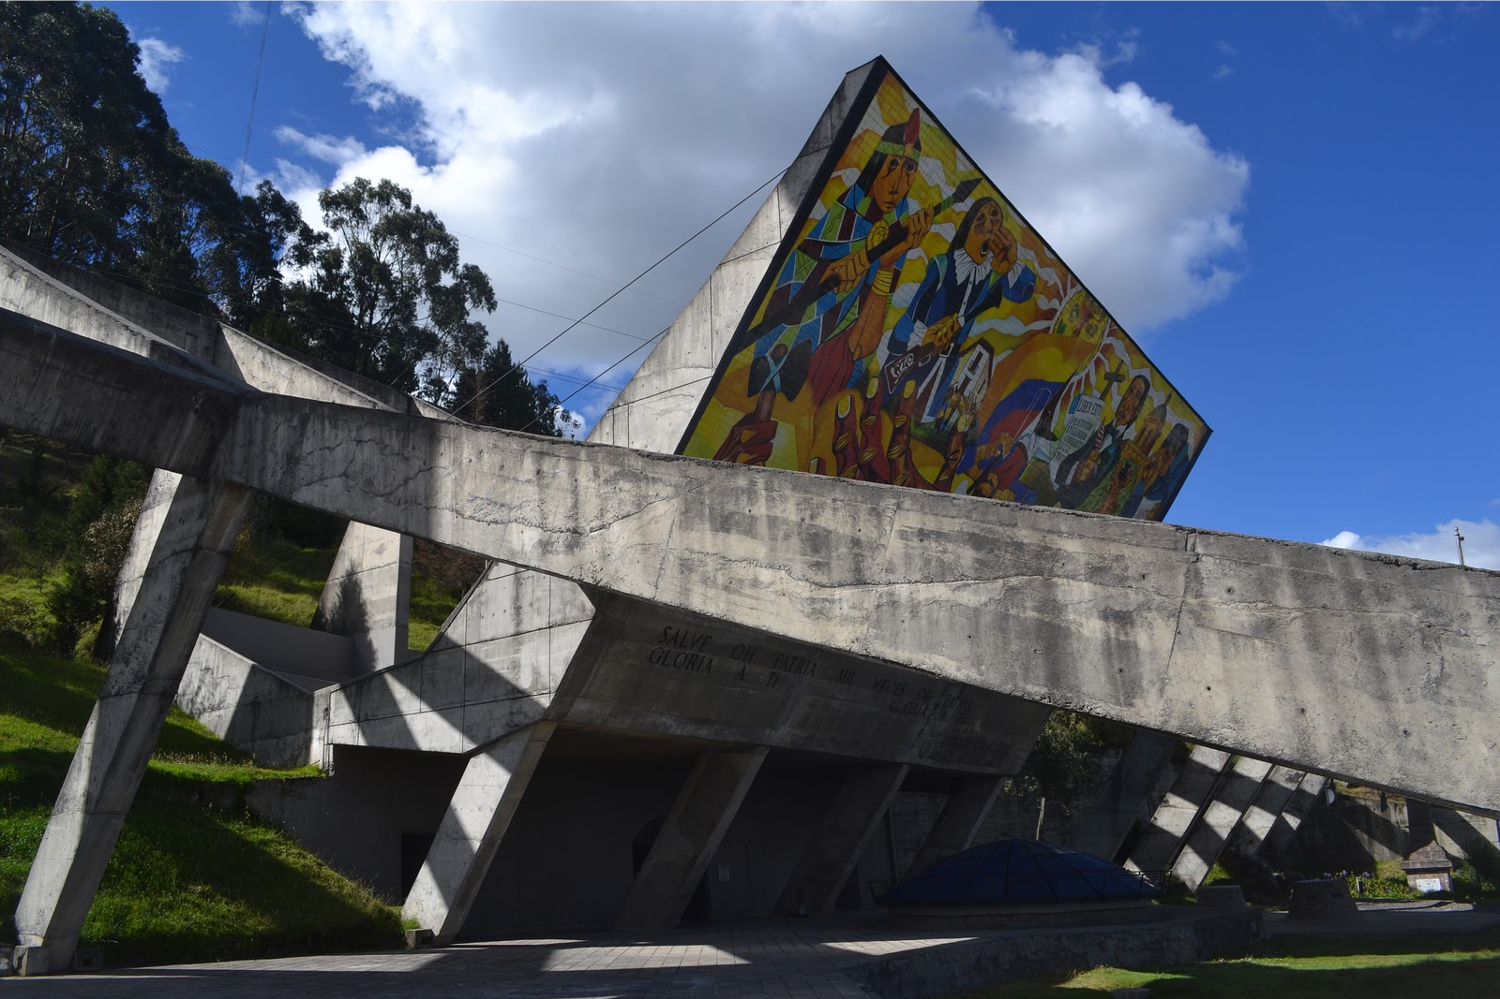 Our North is the South: Latin American Cities in a Global Context